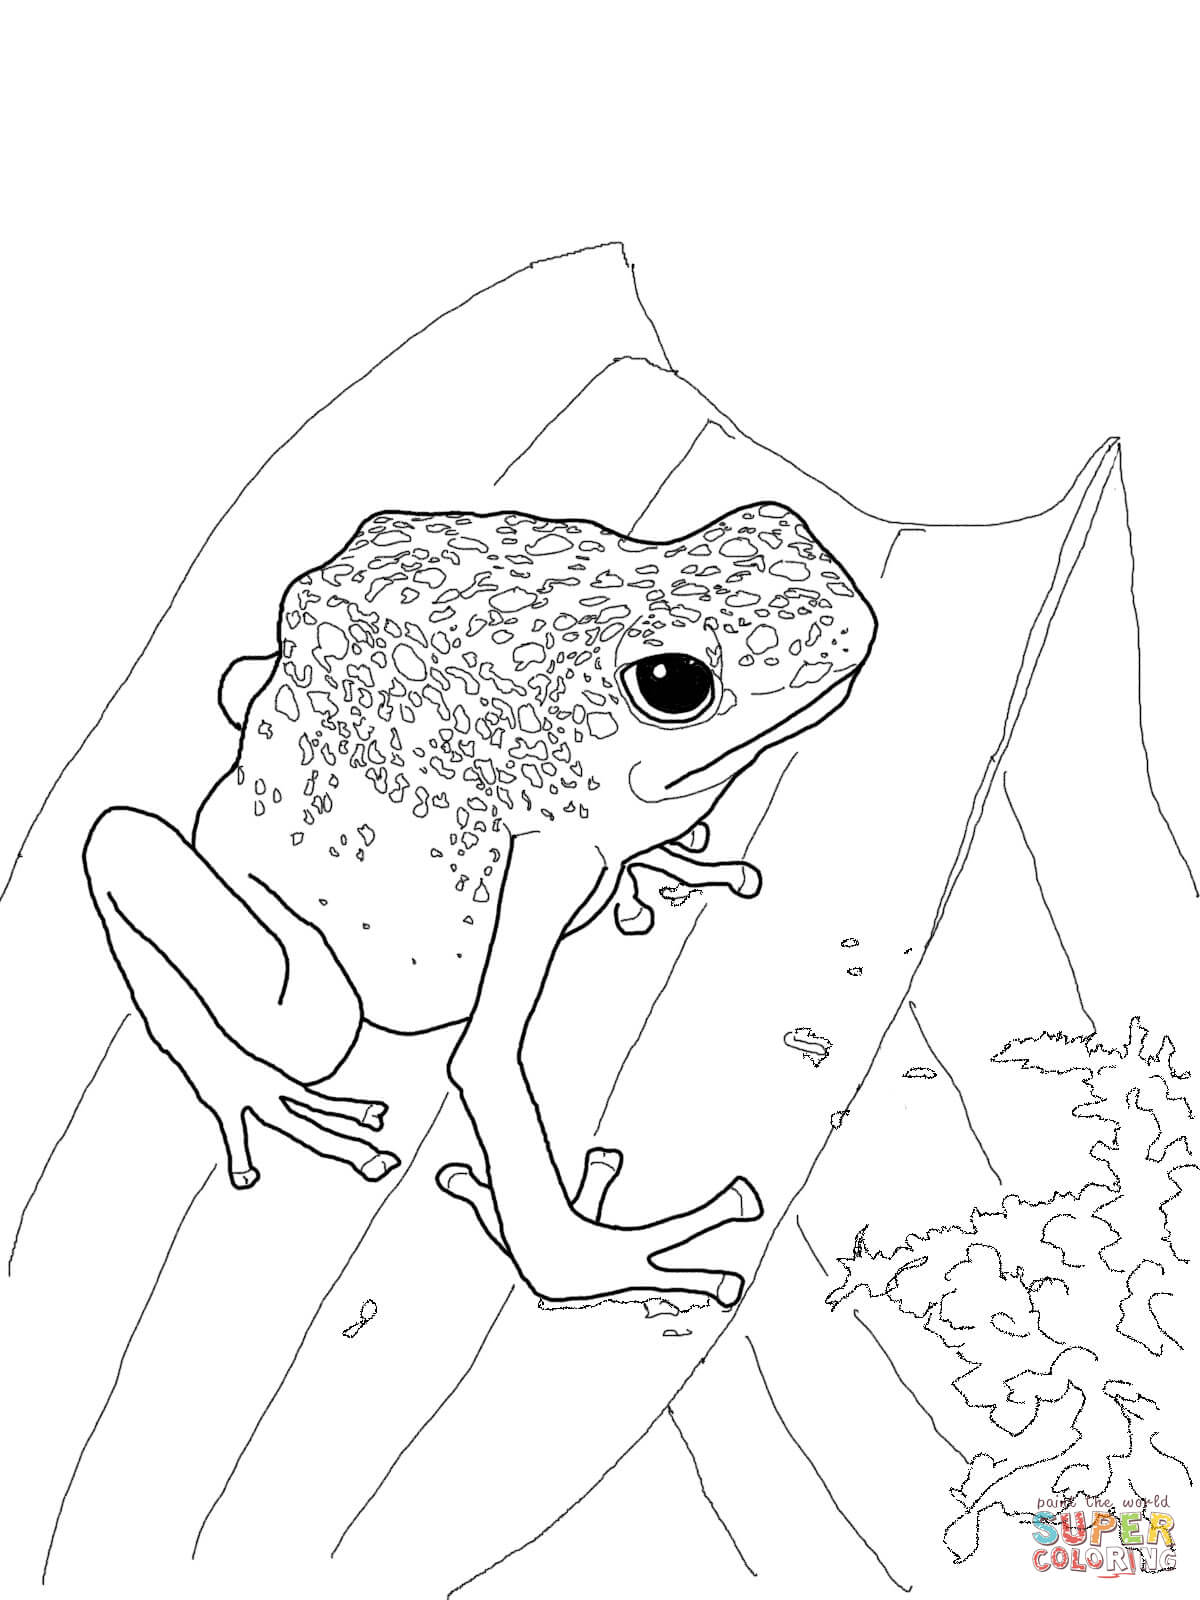 Free printables color blue - Blue Poison Dart Frog Coloring Page Free Printable Coloring Pages